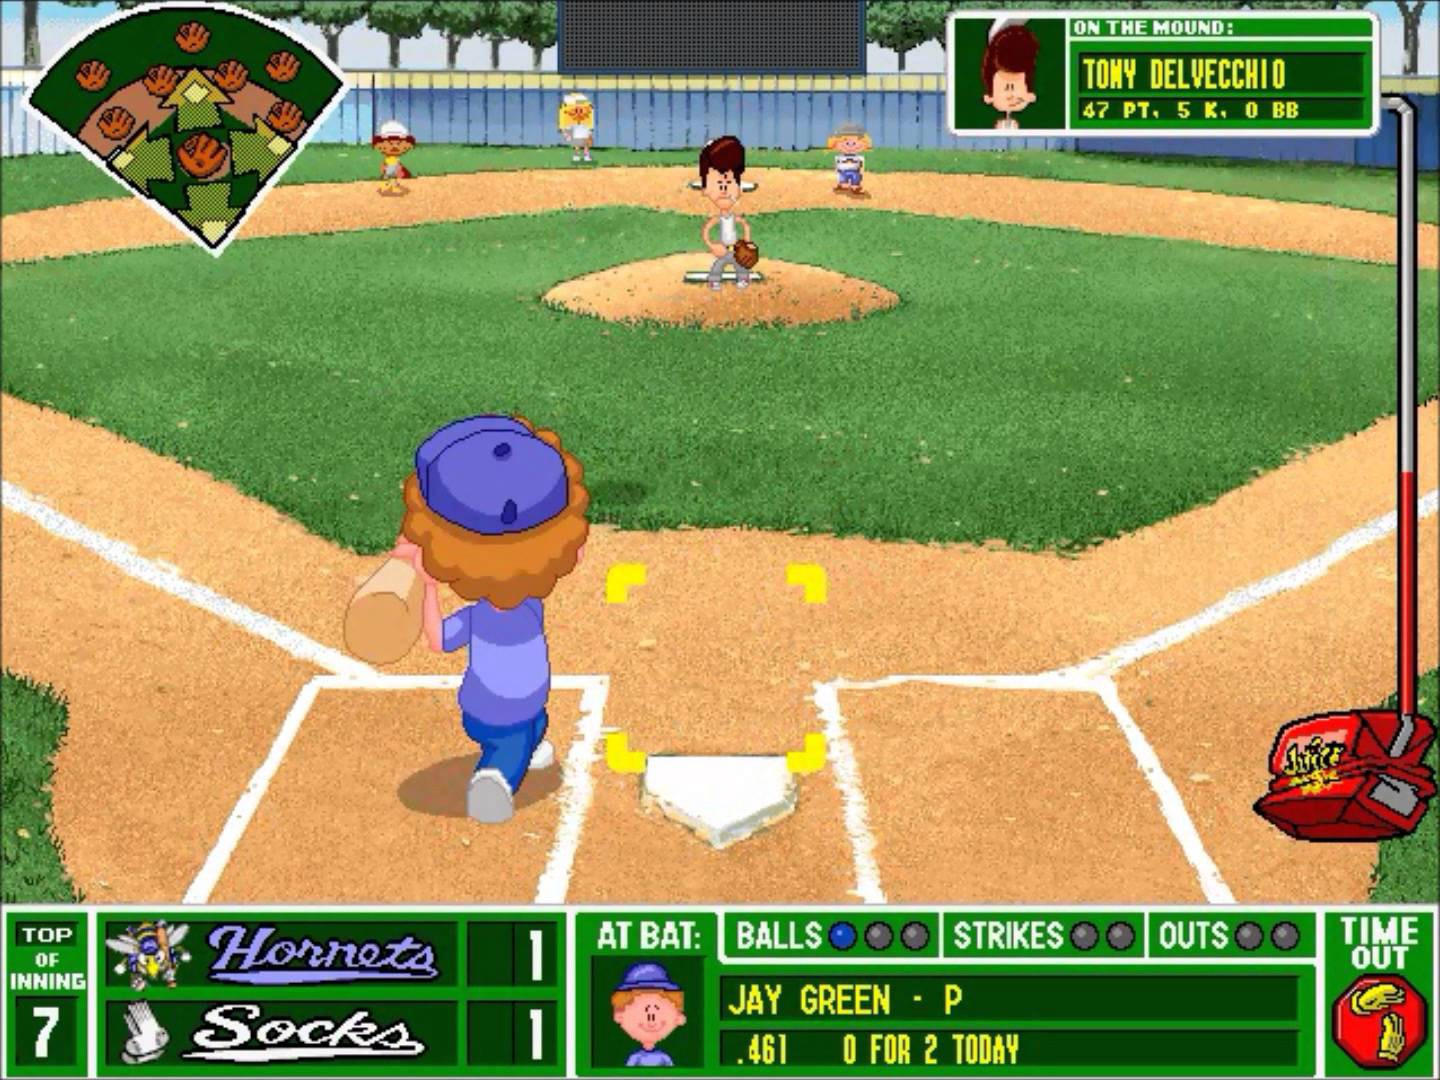 Share; Tweet - The Official Backyard Baseball Tier List - Freshly Popped Culture